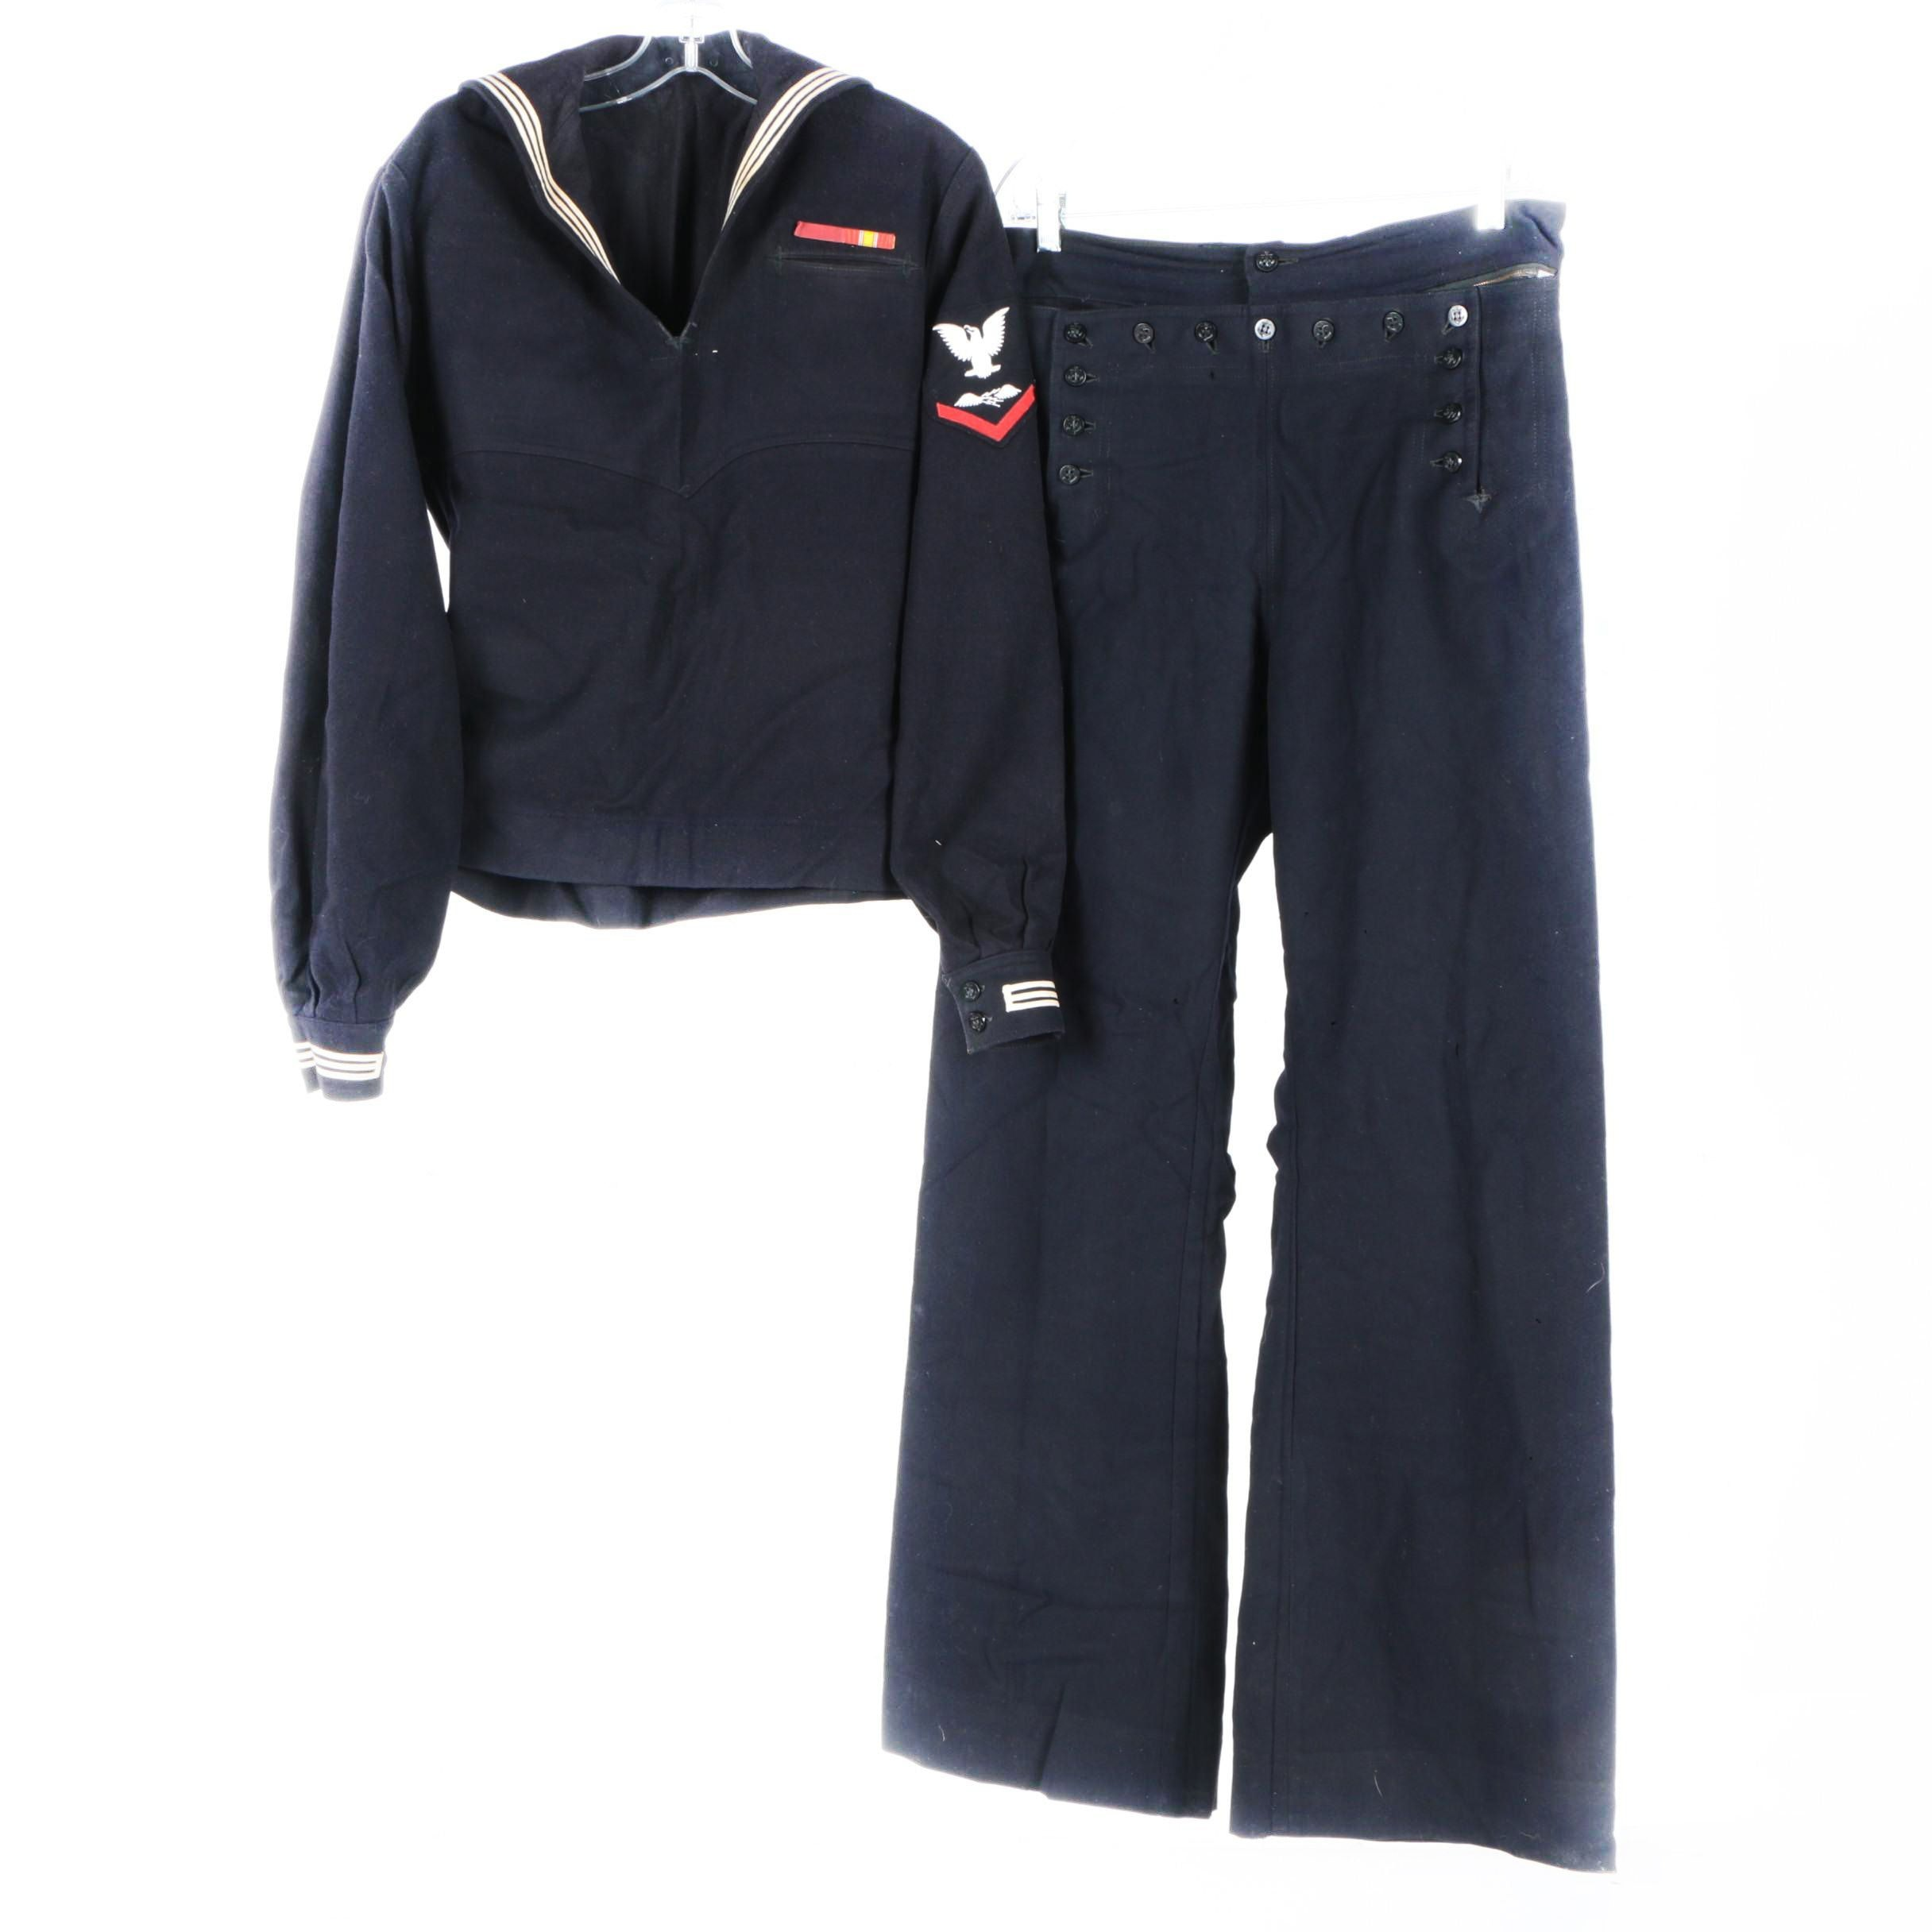 Vintage U.S. Navy Jumper and Trousers